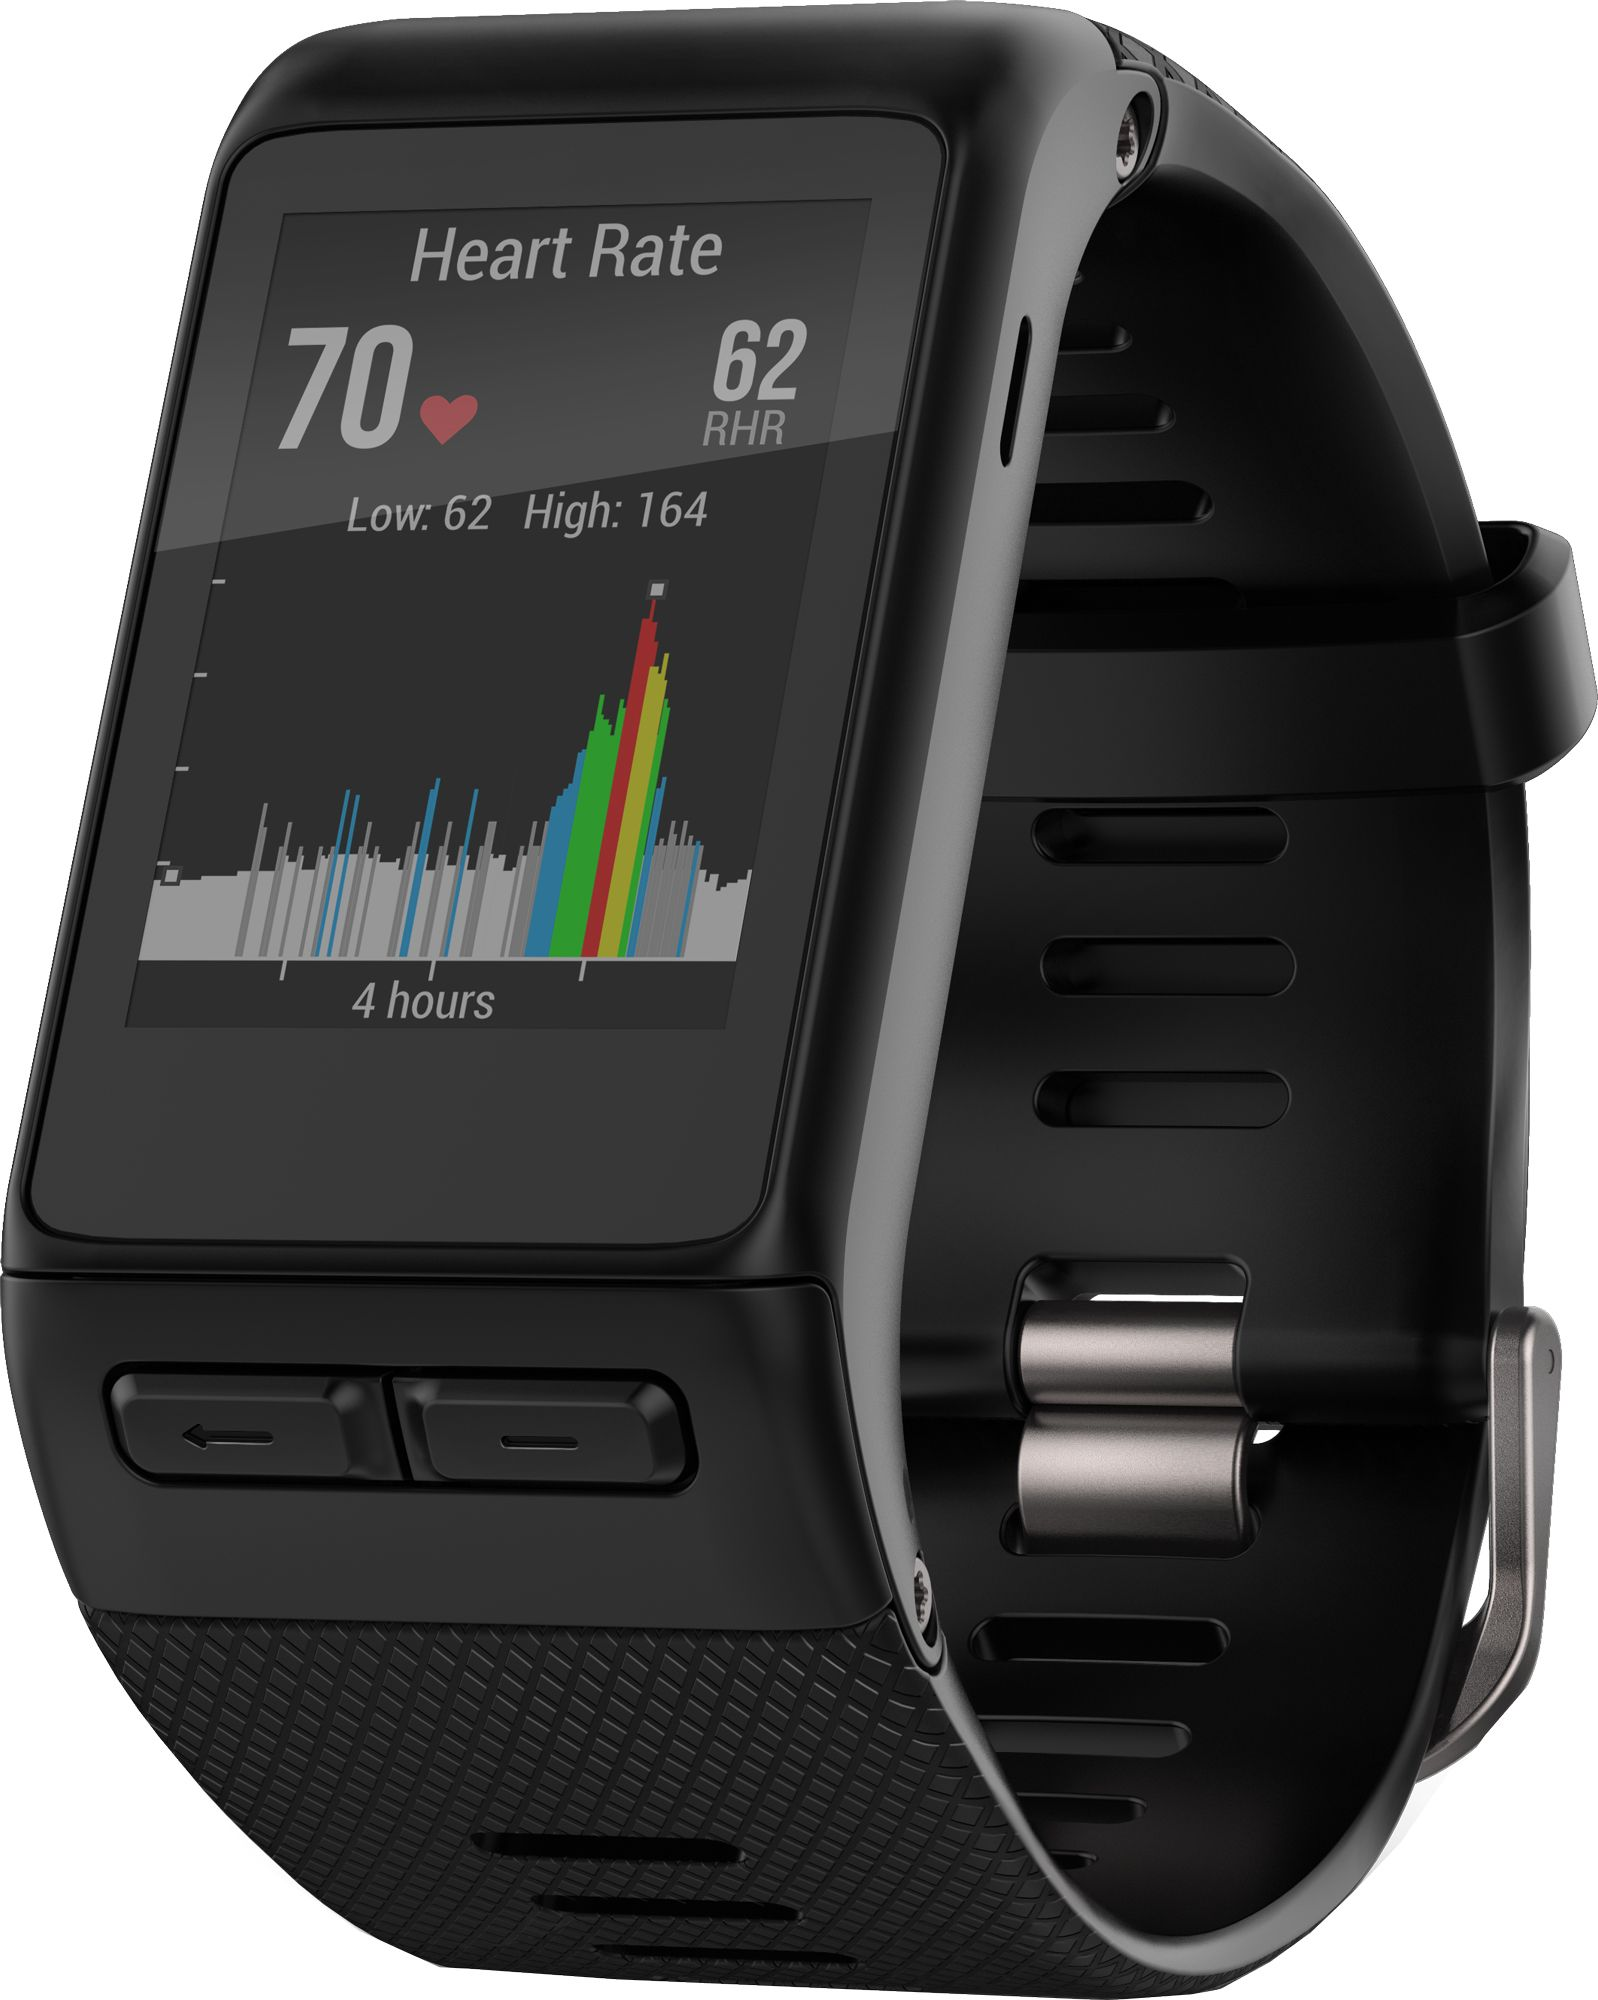 and forerunner music gps new payments cnet family ces s garmins news foreunner at smartwatch onboard adds watches garmin